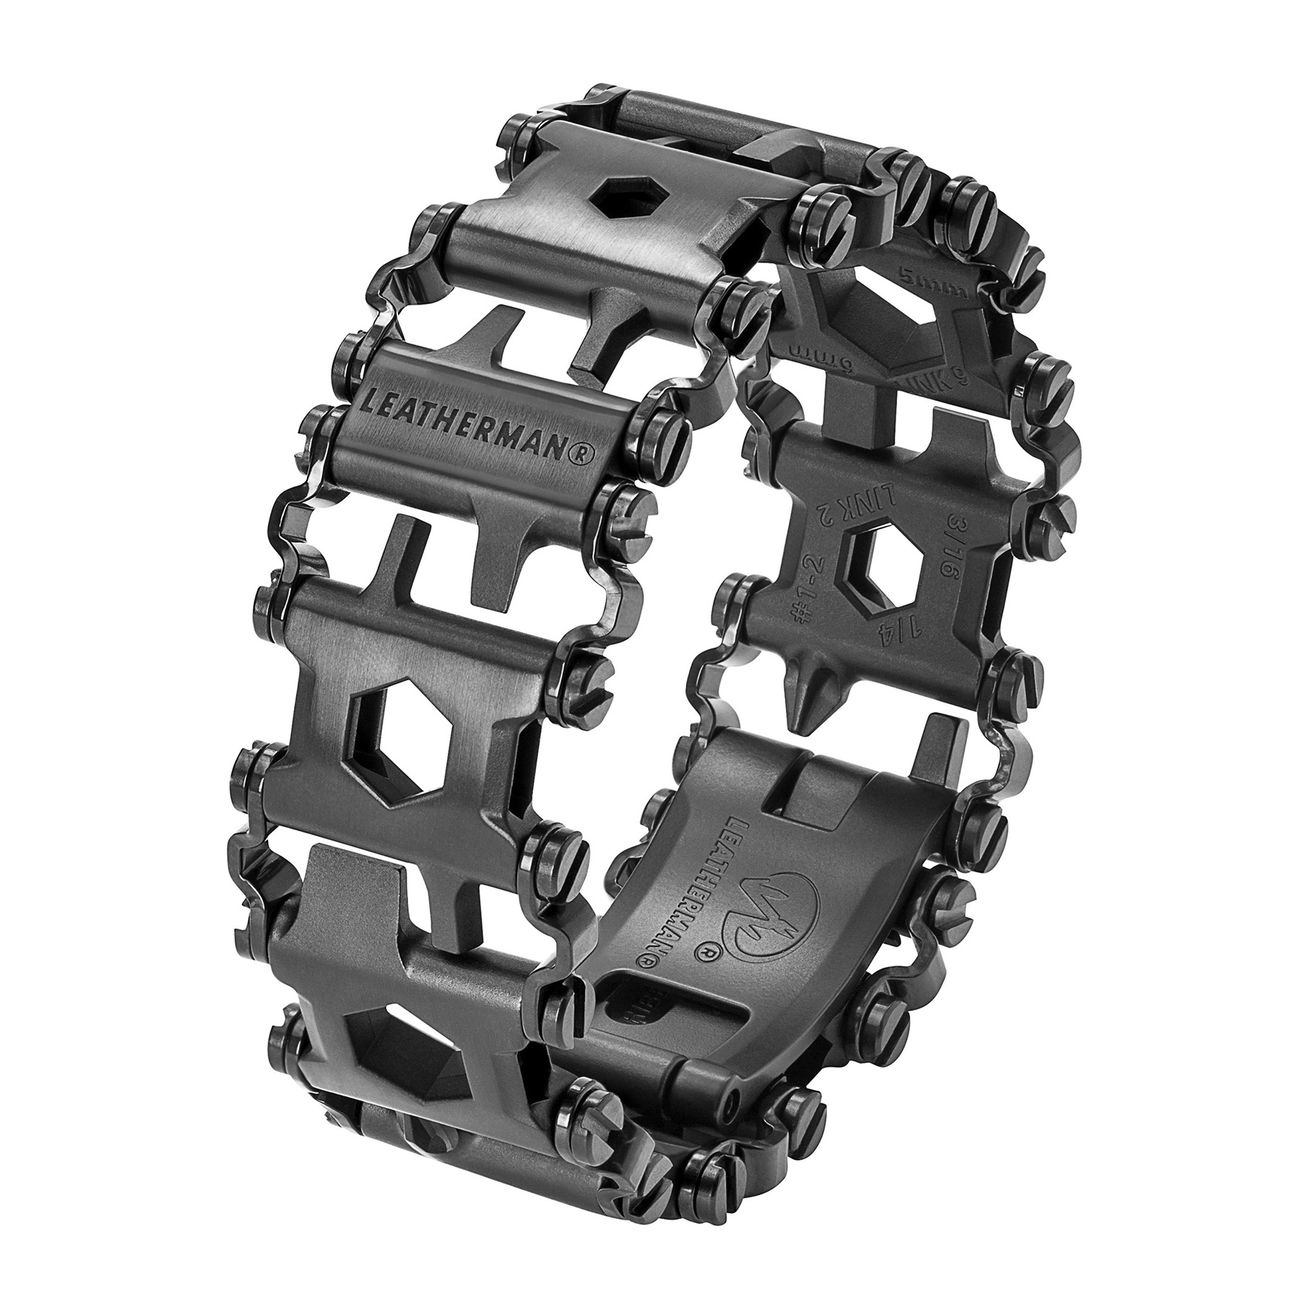 Leatherman Tread Multitool Armband schwarz 0